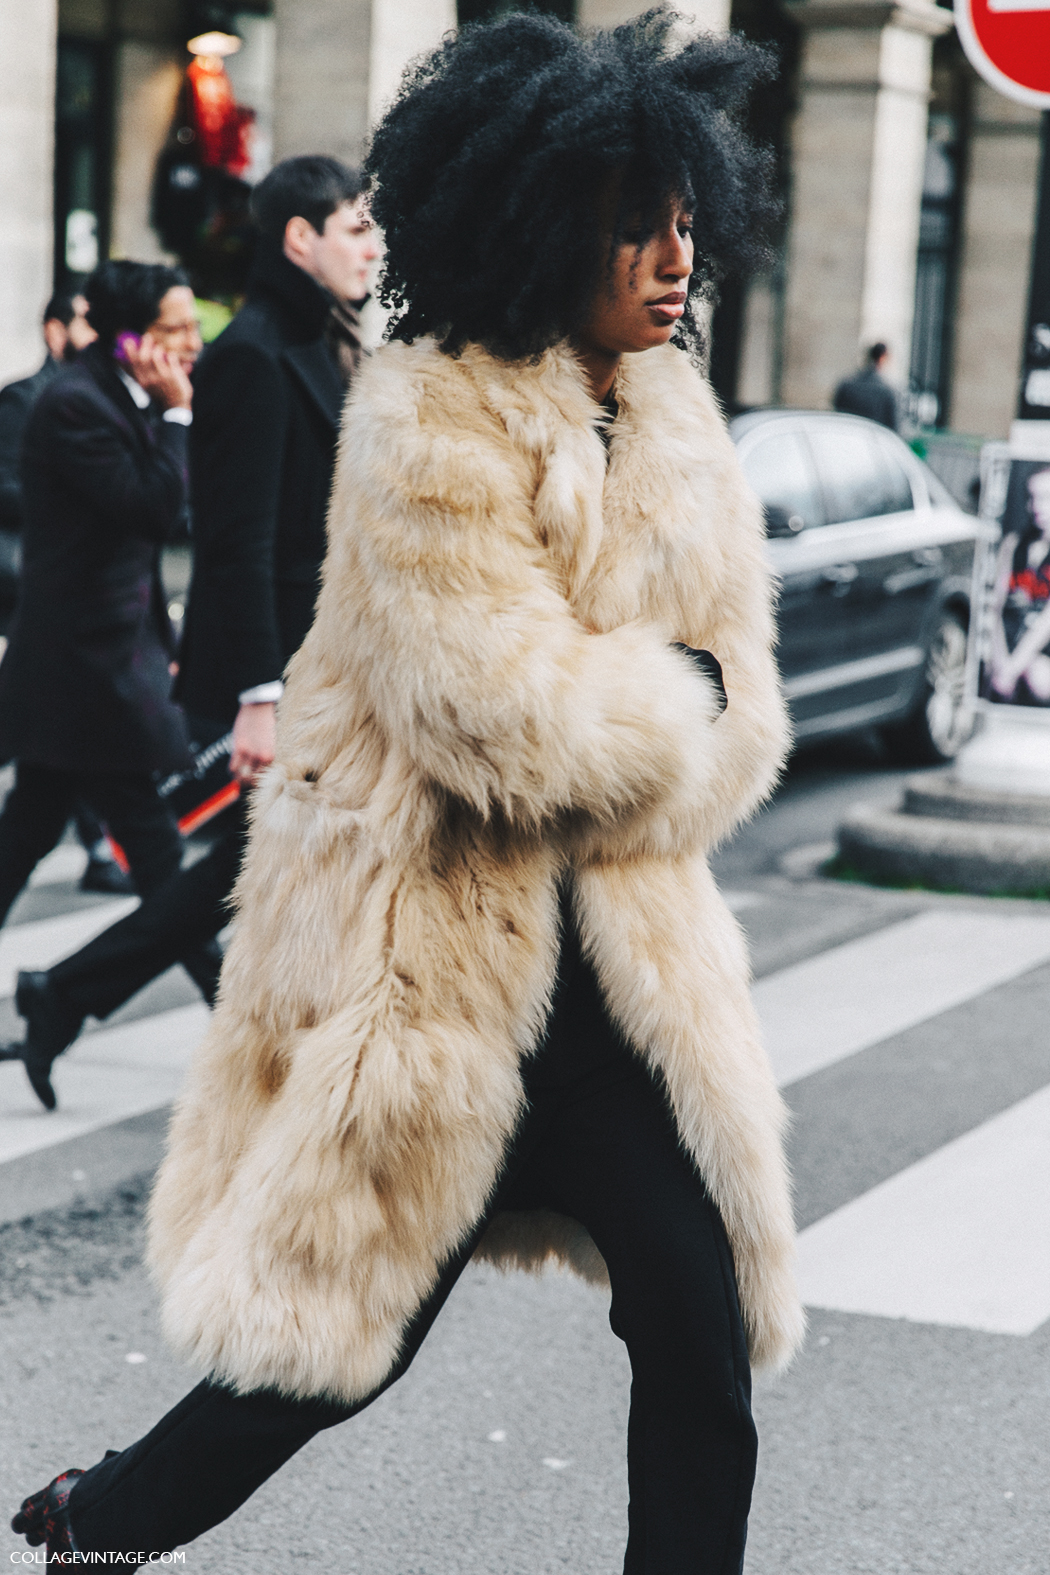 PFW-Paris_Fashion_Week_Fall_2016-Street_Style-Collage_Vintage-Julia_sarr_jamois-Fur_Coat-